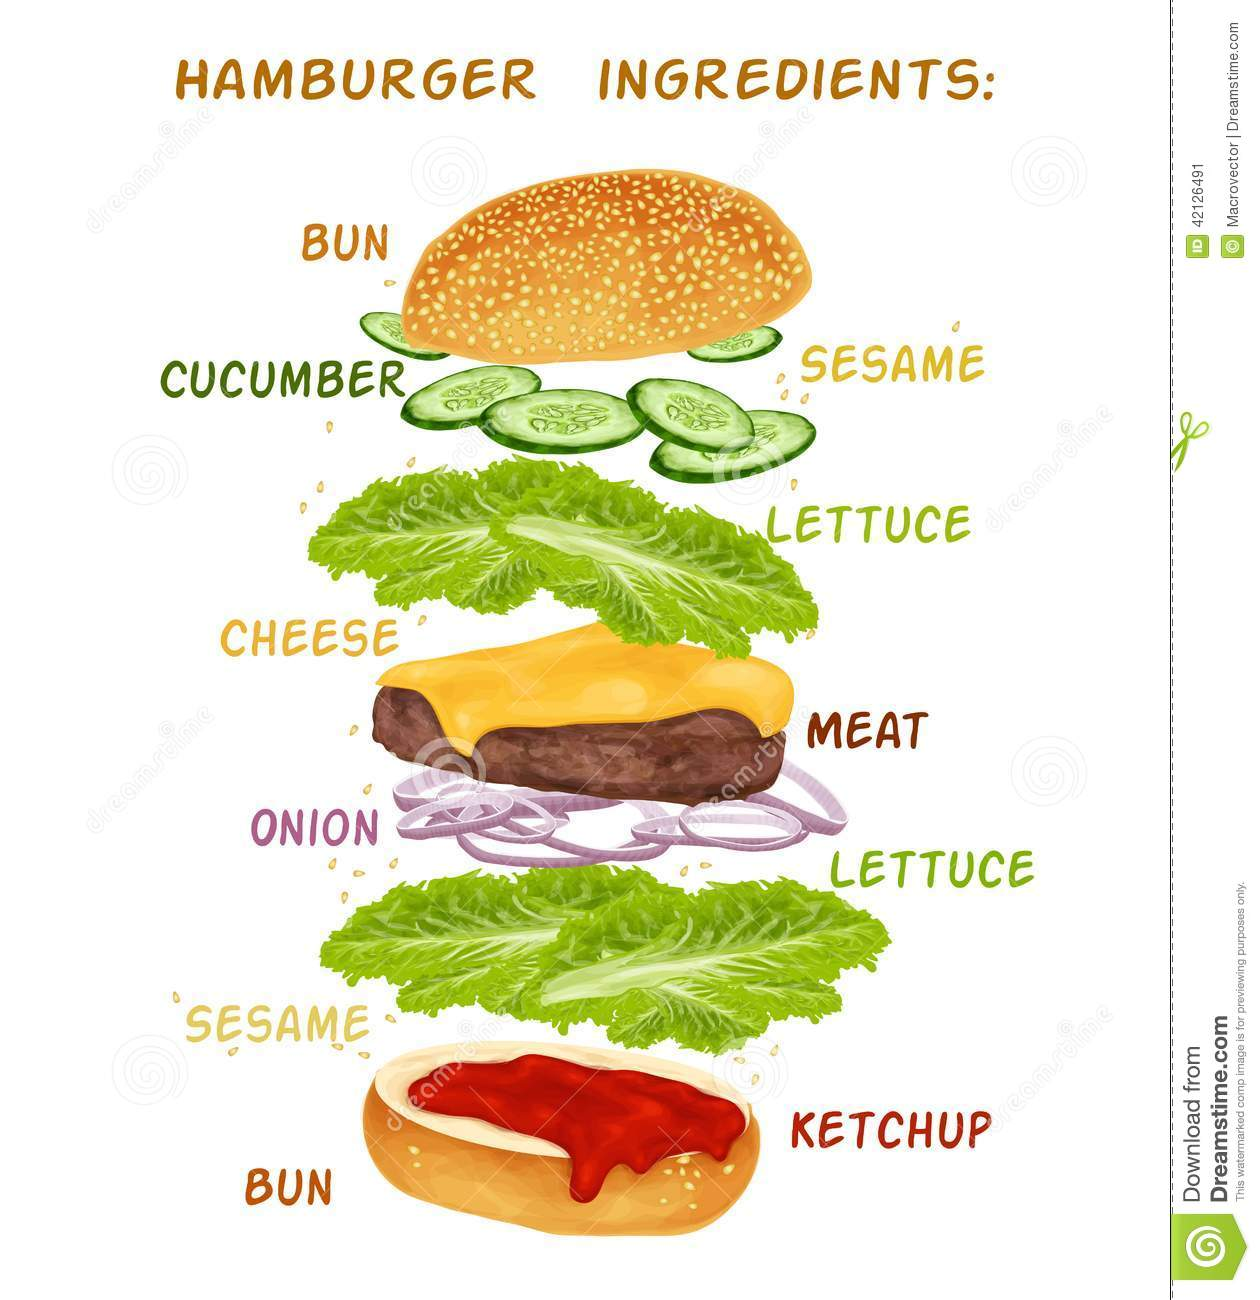 ... ingredients set of bun cucumber meat ketchup vector illustration